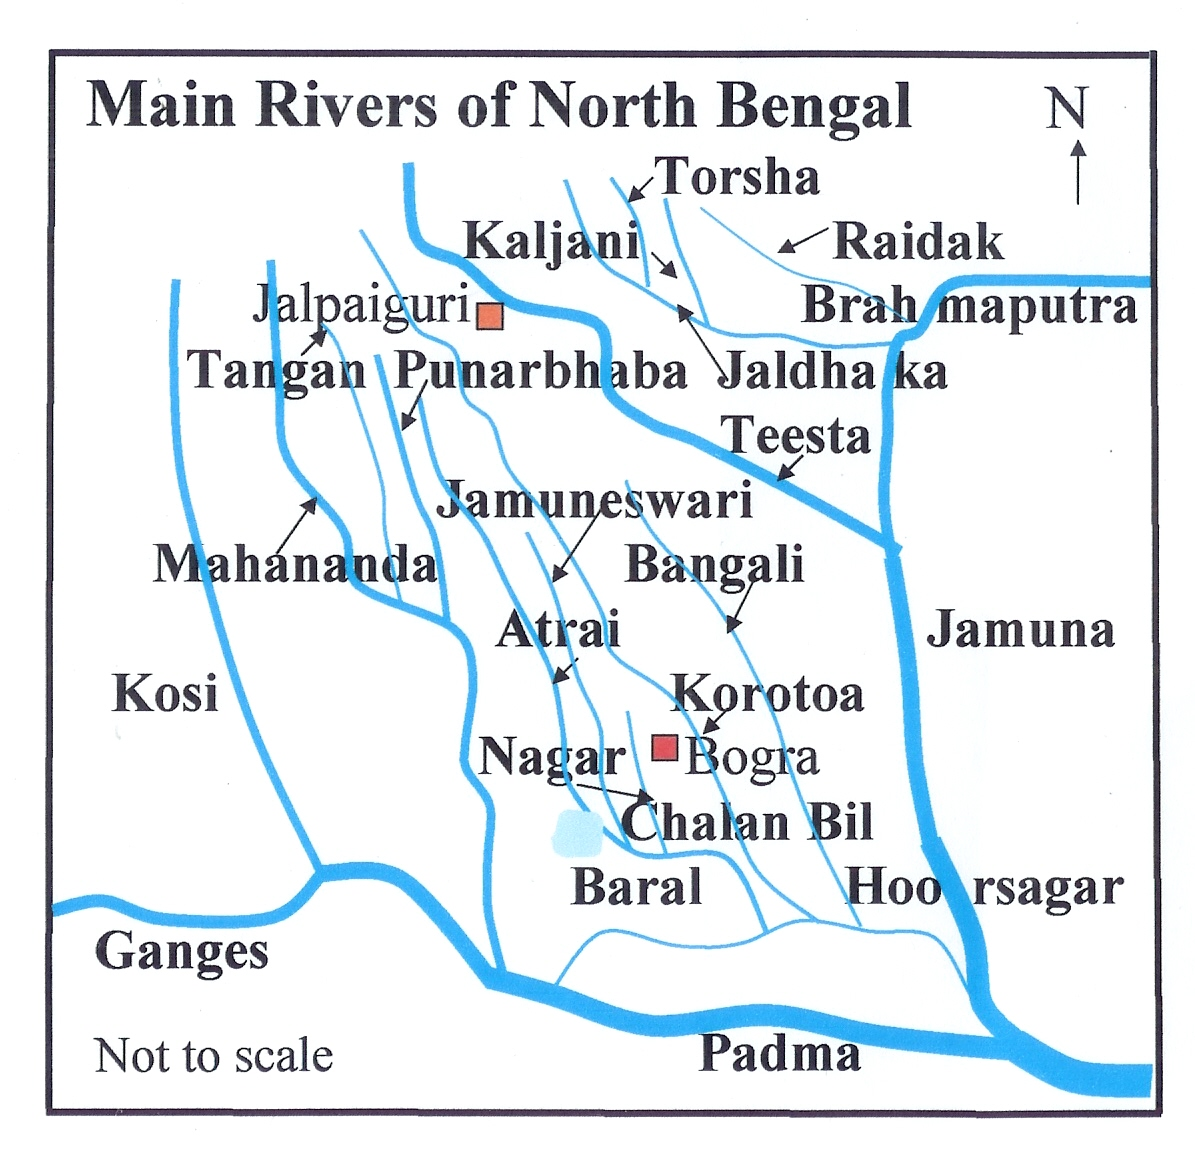 http://upload.wikimedia.org/wikipedia/commons/e/ea/BD_Map_Rivers_of_North_Bengal2.jpg